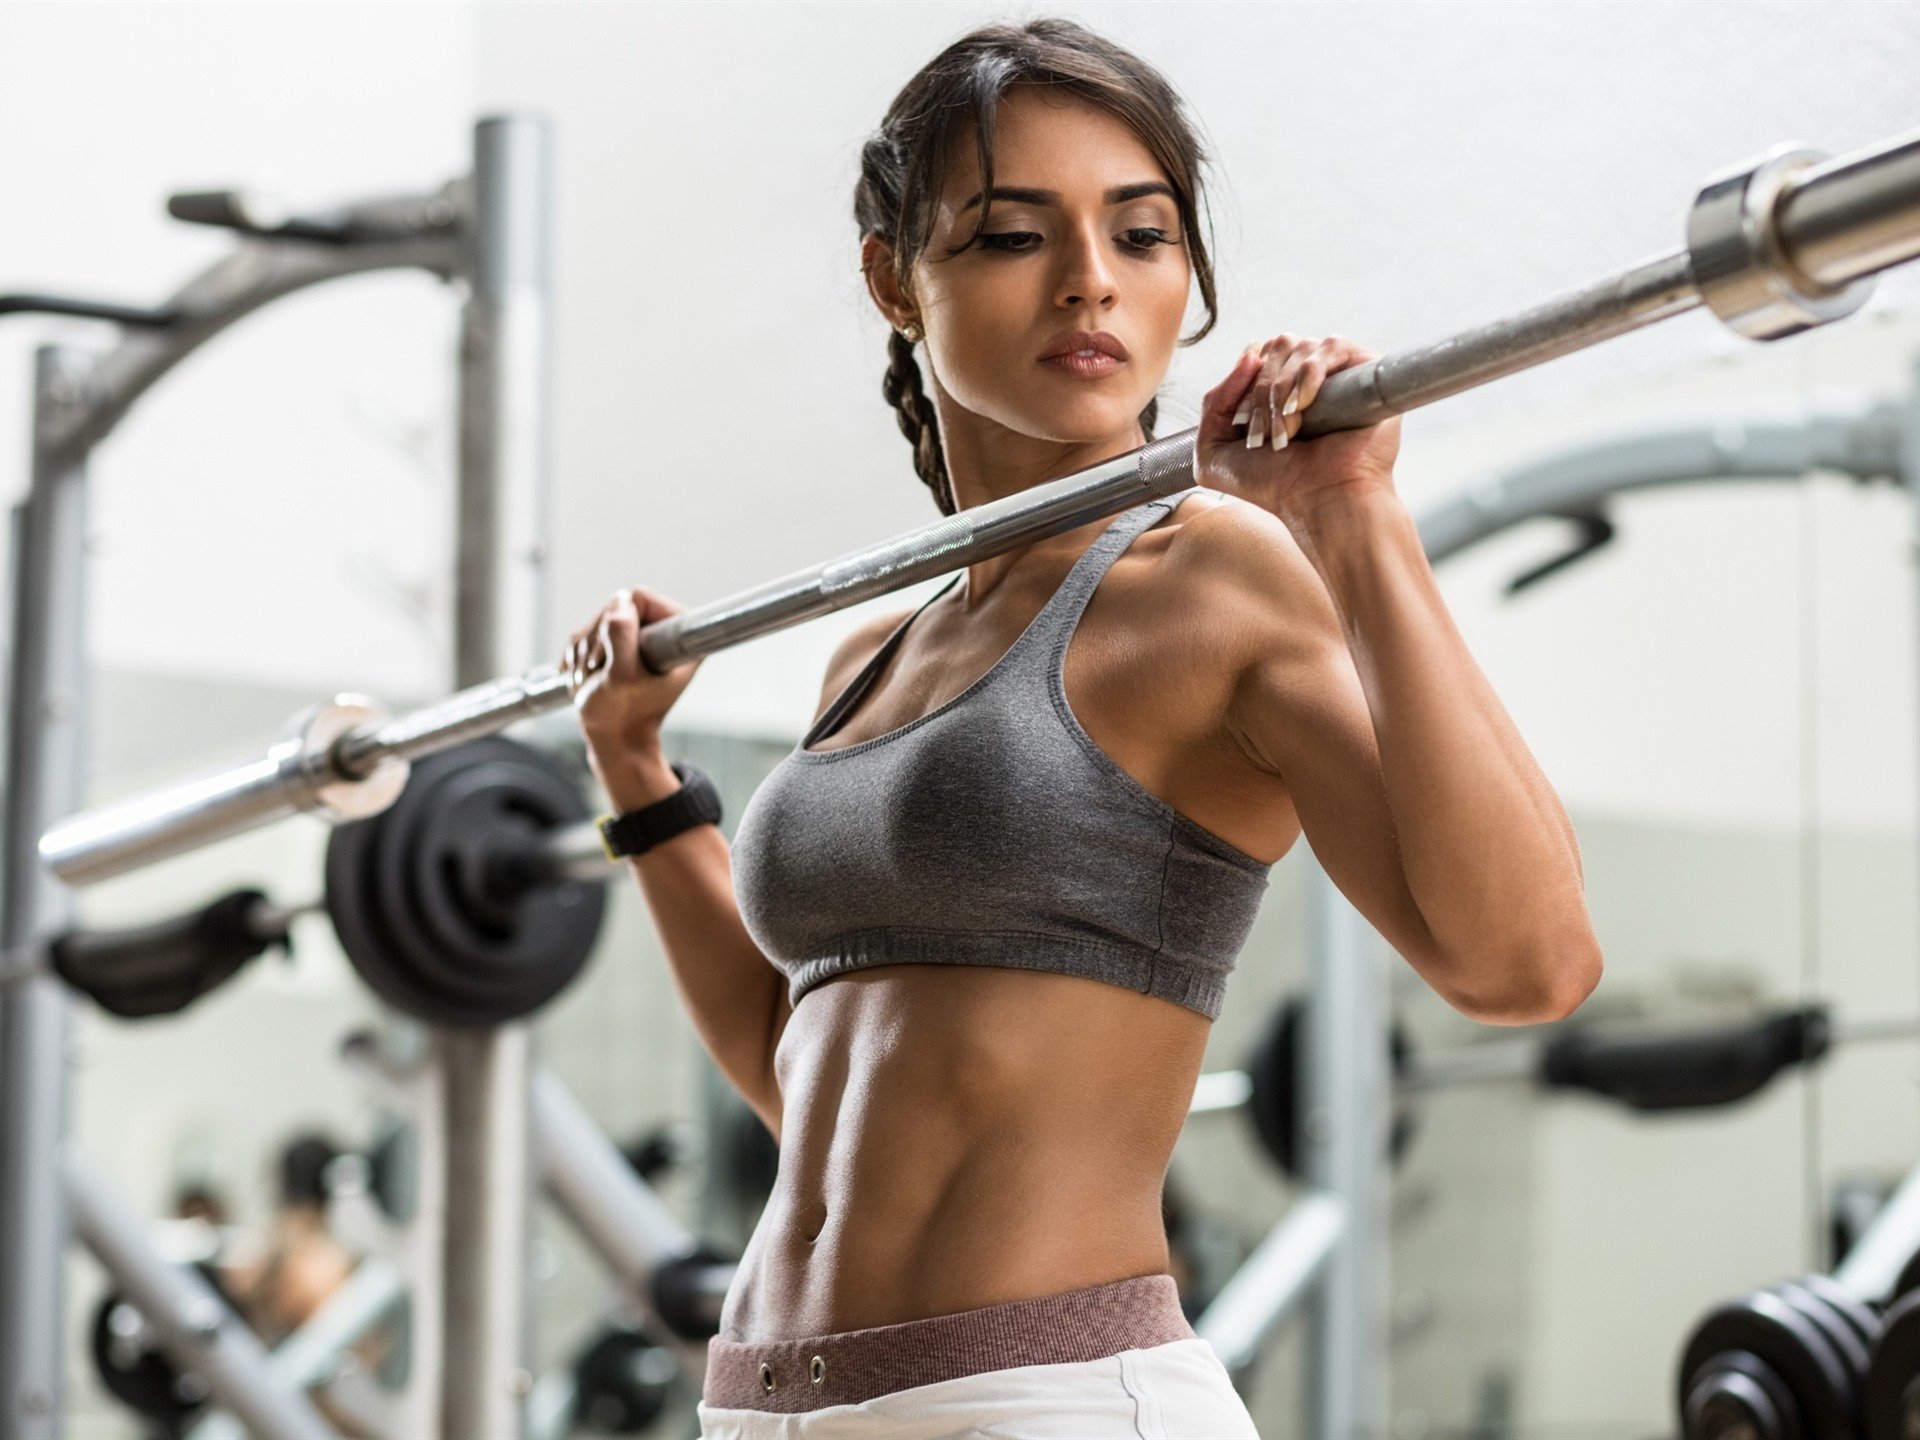 Wallpaper Fitness girl, gym, hands, look, sport 1920x1440 HD Picture, Image